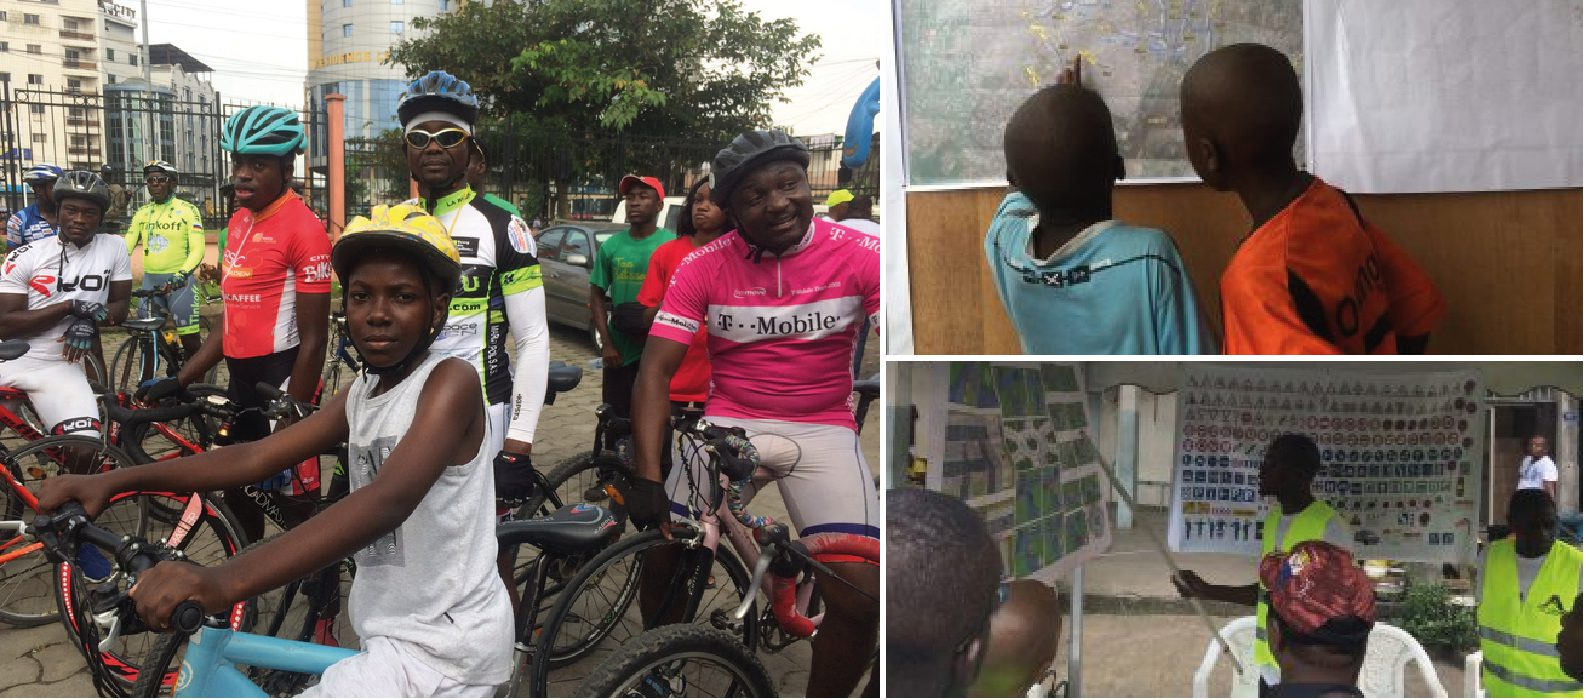 Car-free day in Douala (Cameroon): a great success!